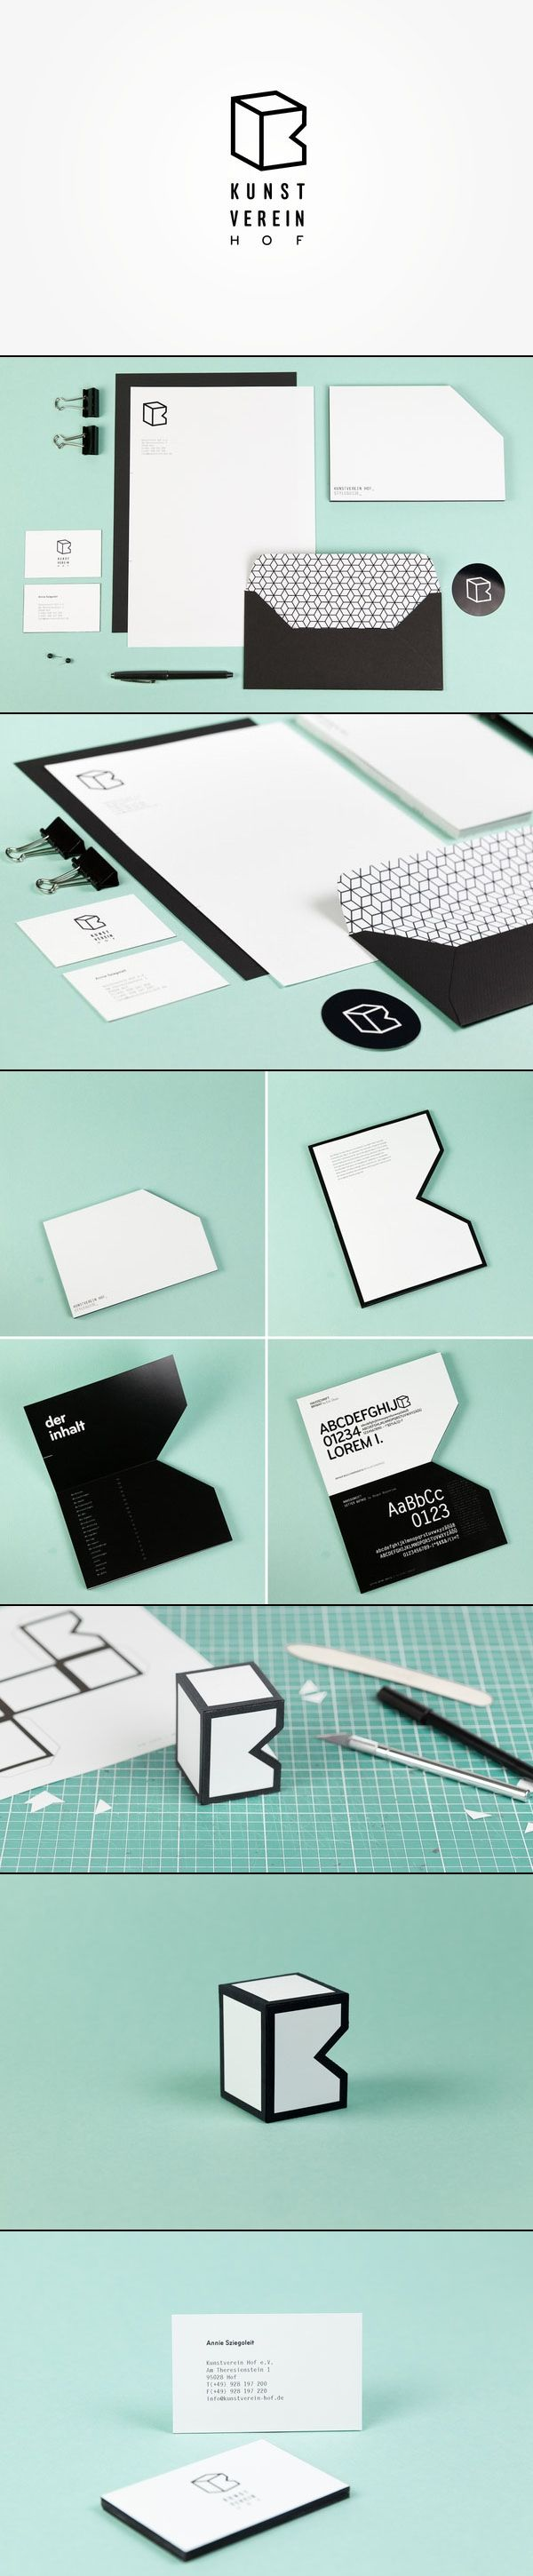 Kunstverein Hof – Branding by Sebastian Berbig and Derya Ormanci | repinned by www.BlickeDeeler.de | Take a look at www.LogoGestaltung-Hamburg.de